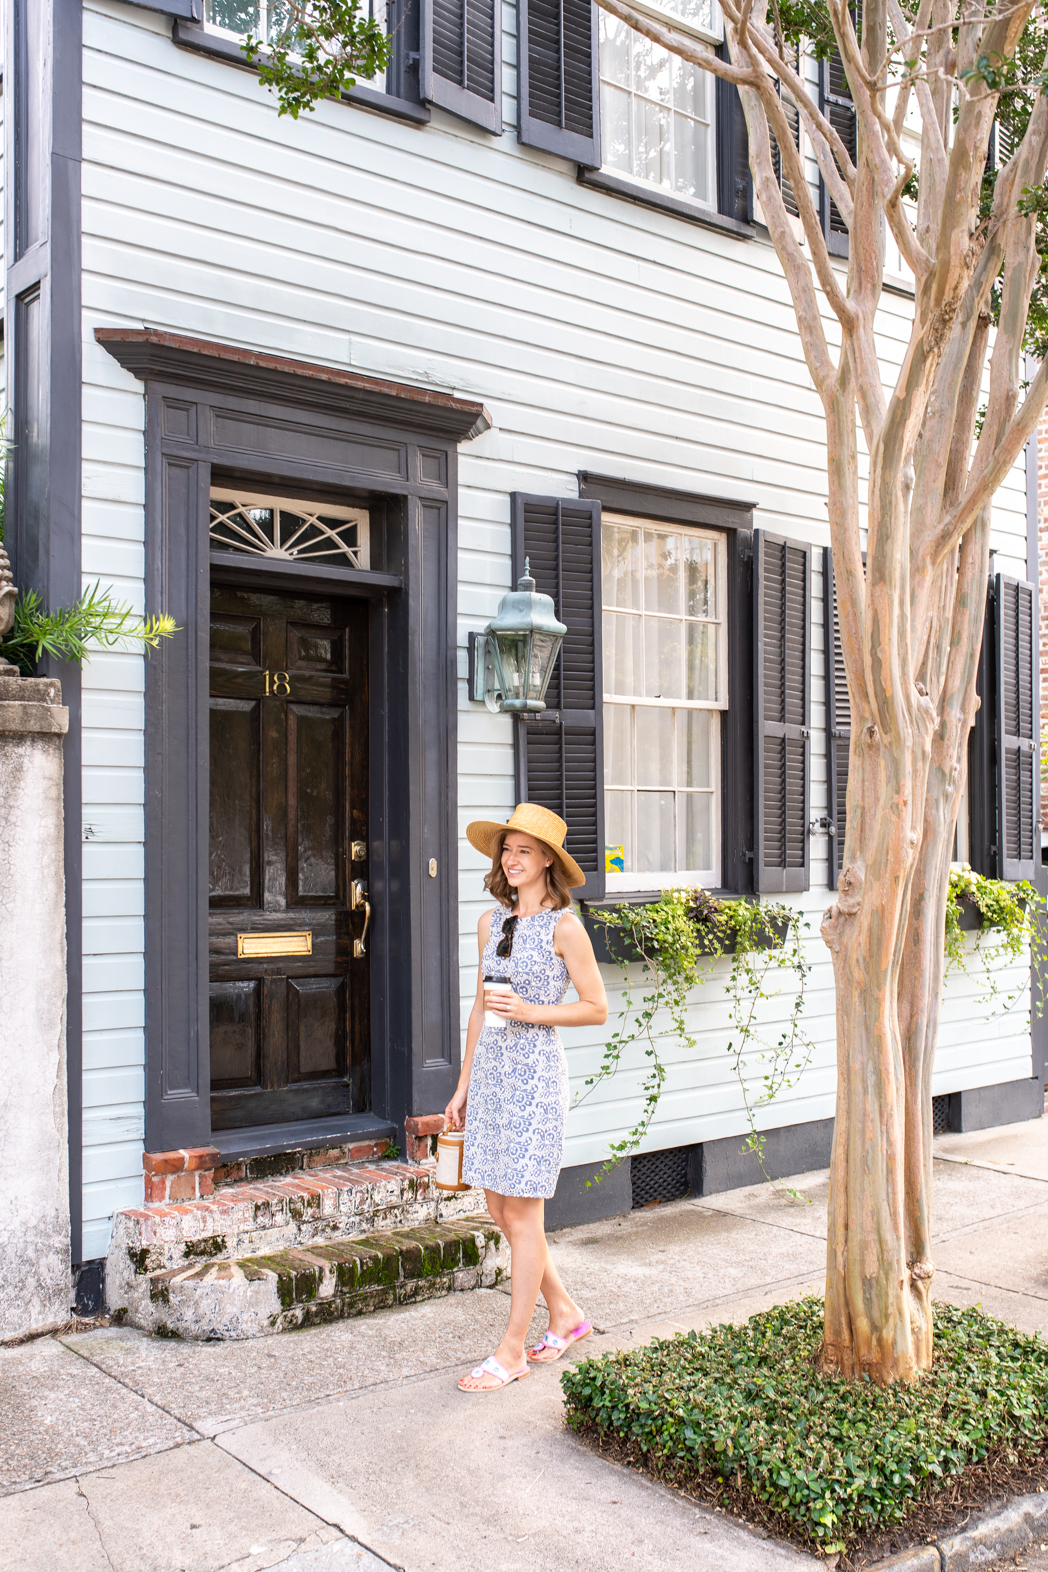 Stacie Flinner Charleston City Guide-33.jpg